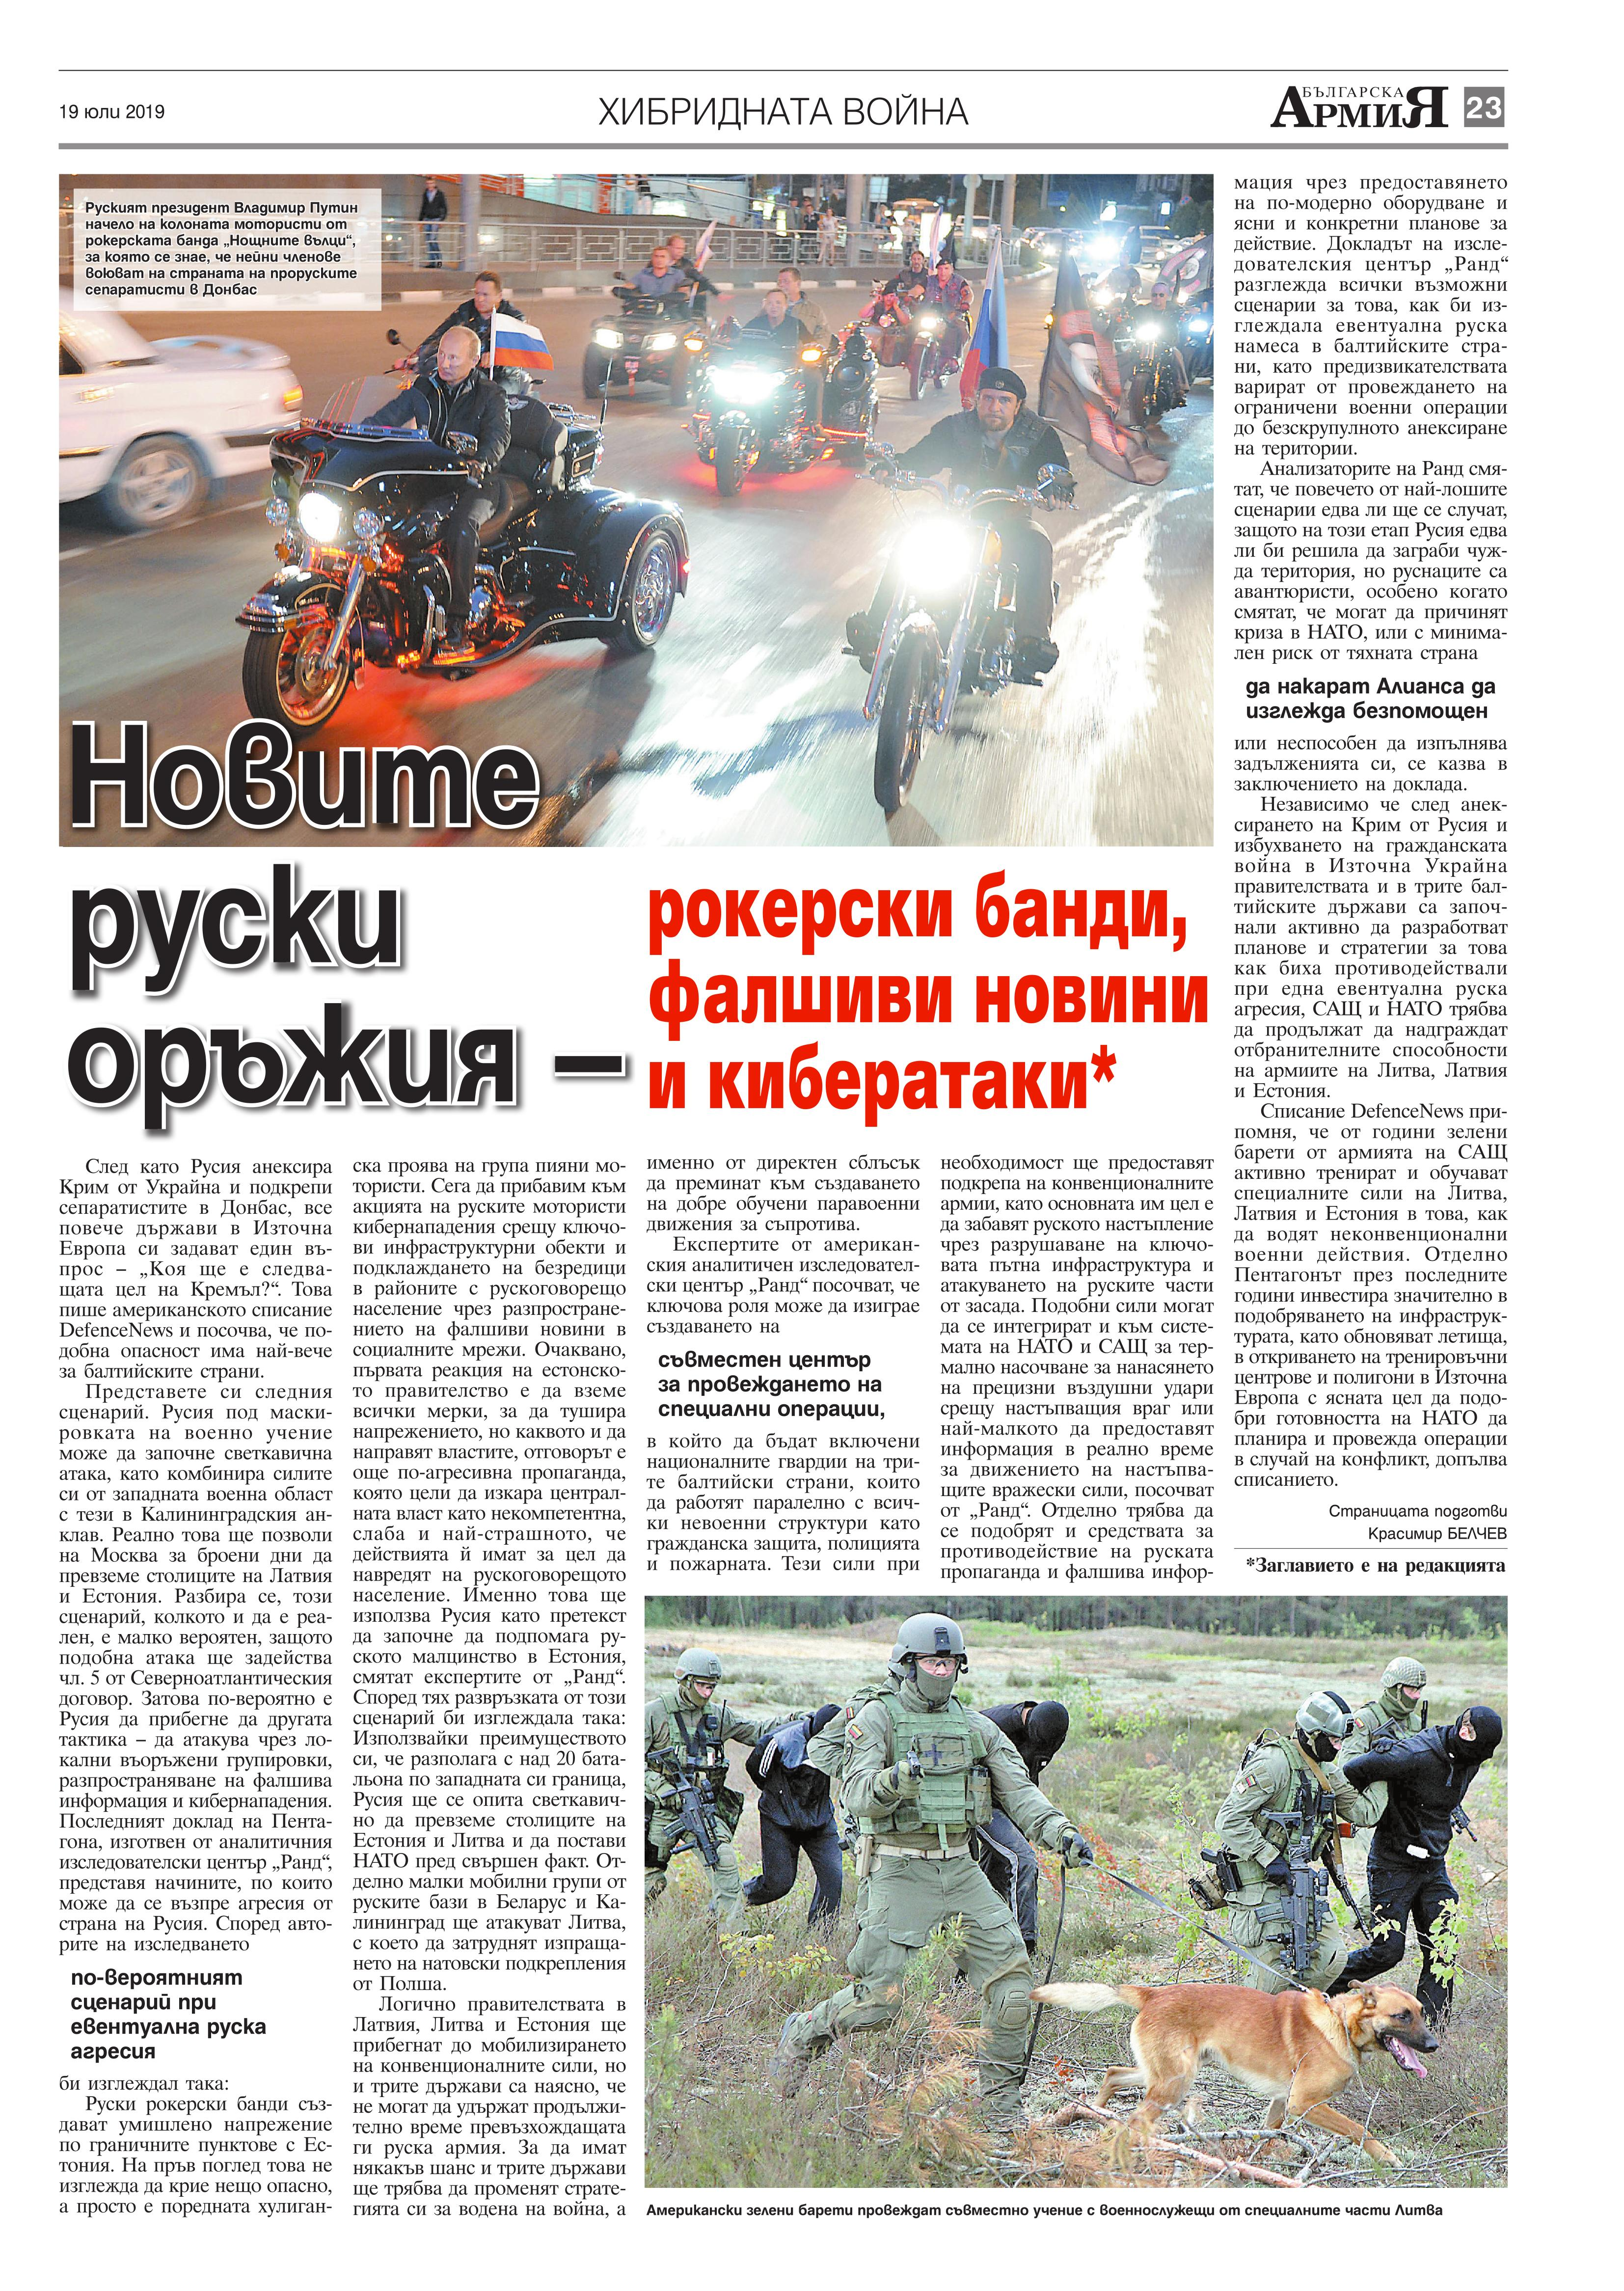 https://armymedia.bg/wp-content/uploads/2015/06/23.page1_-103.jpg